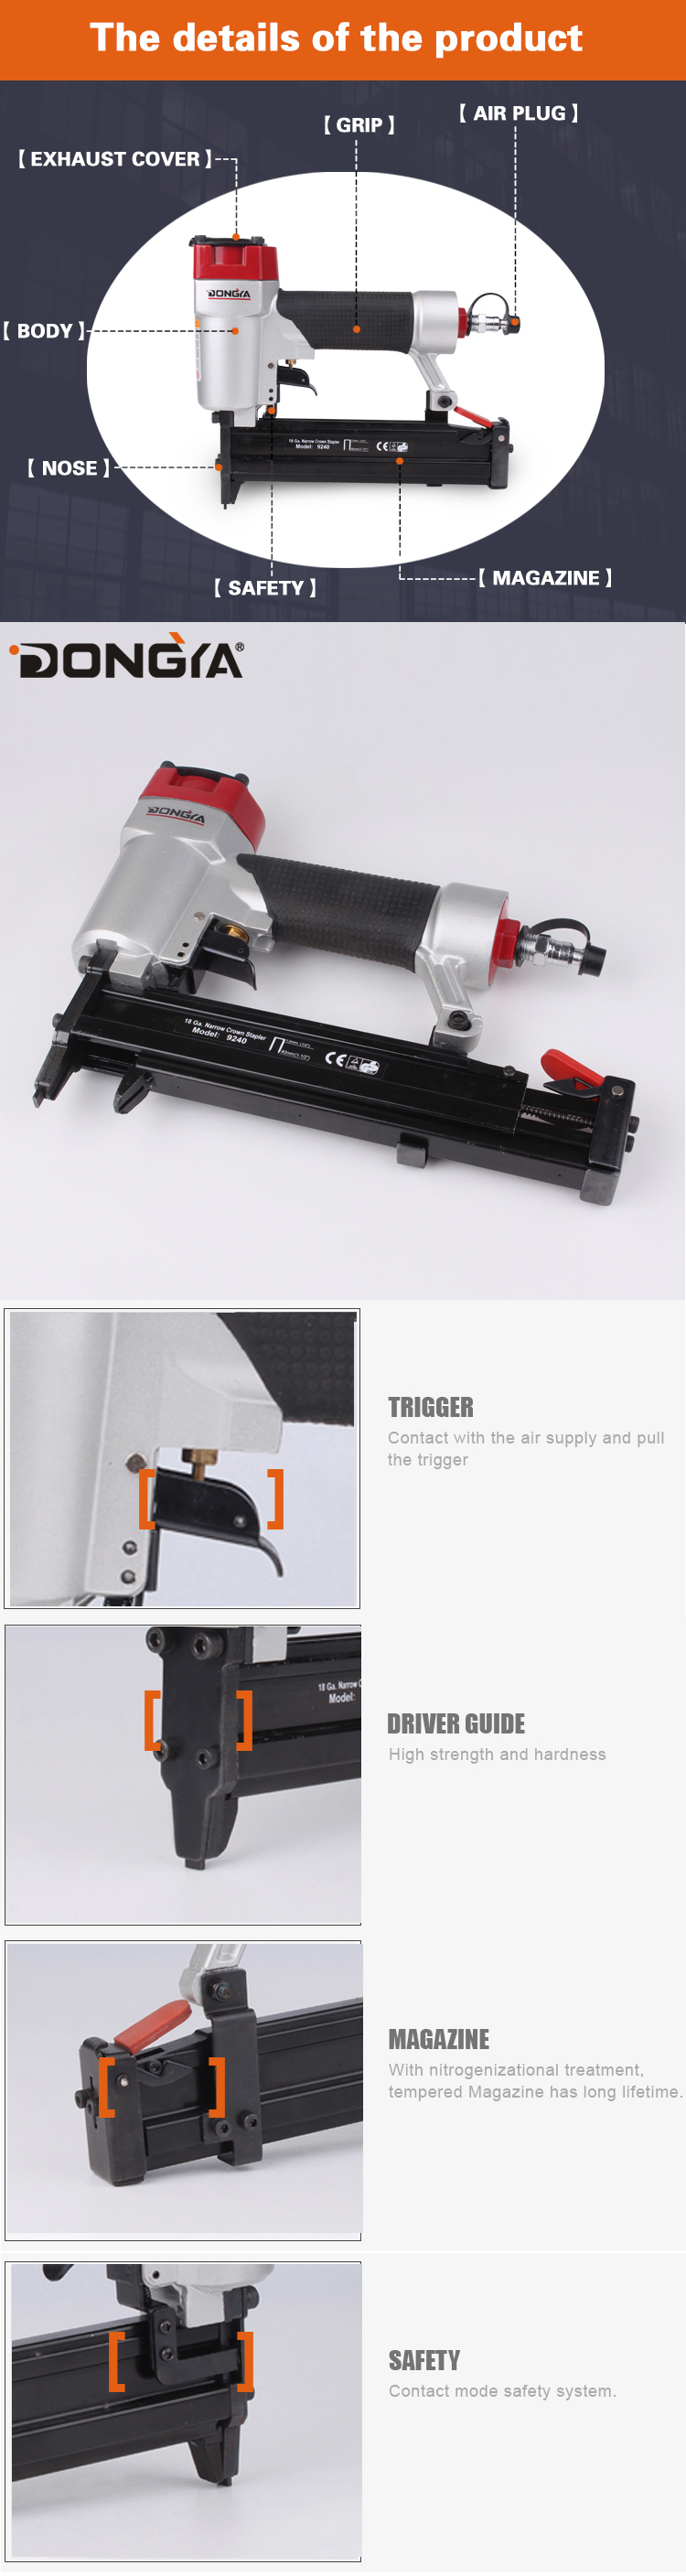 18Ga. Yueqing Upholstery Air Stapler Pneumatic Stapler for wood